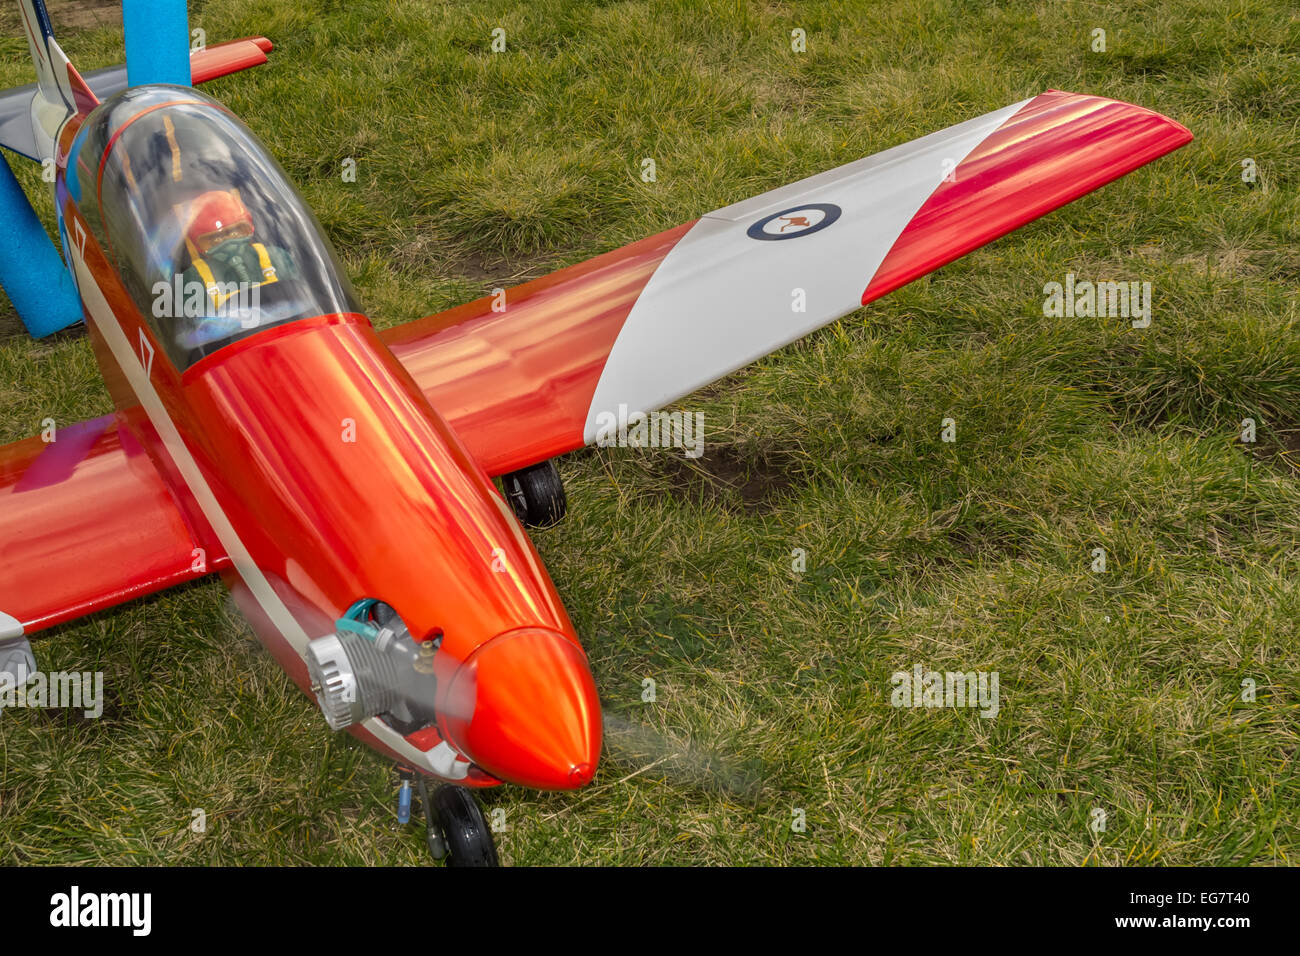 Radio control airplane with engine started - Stock Image